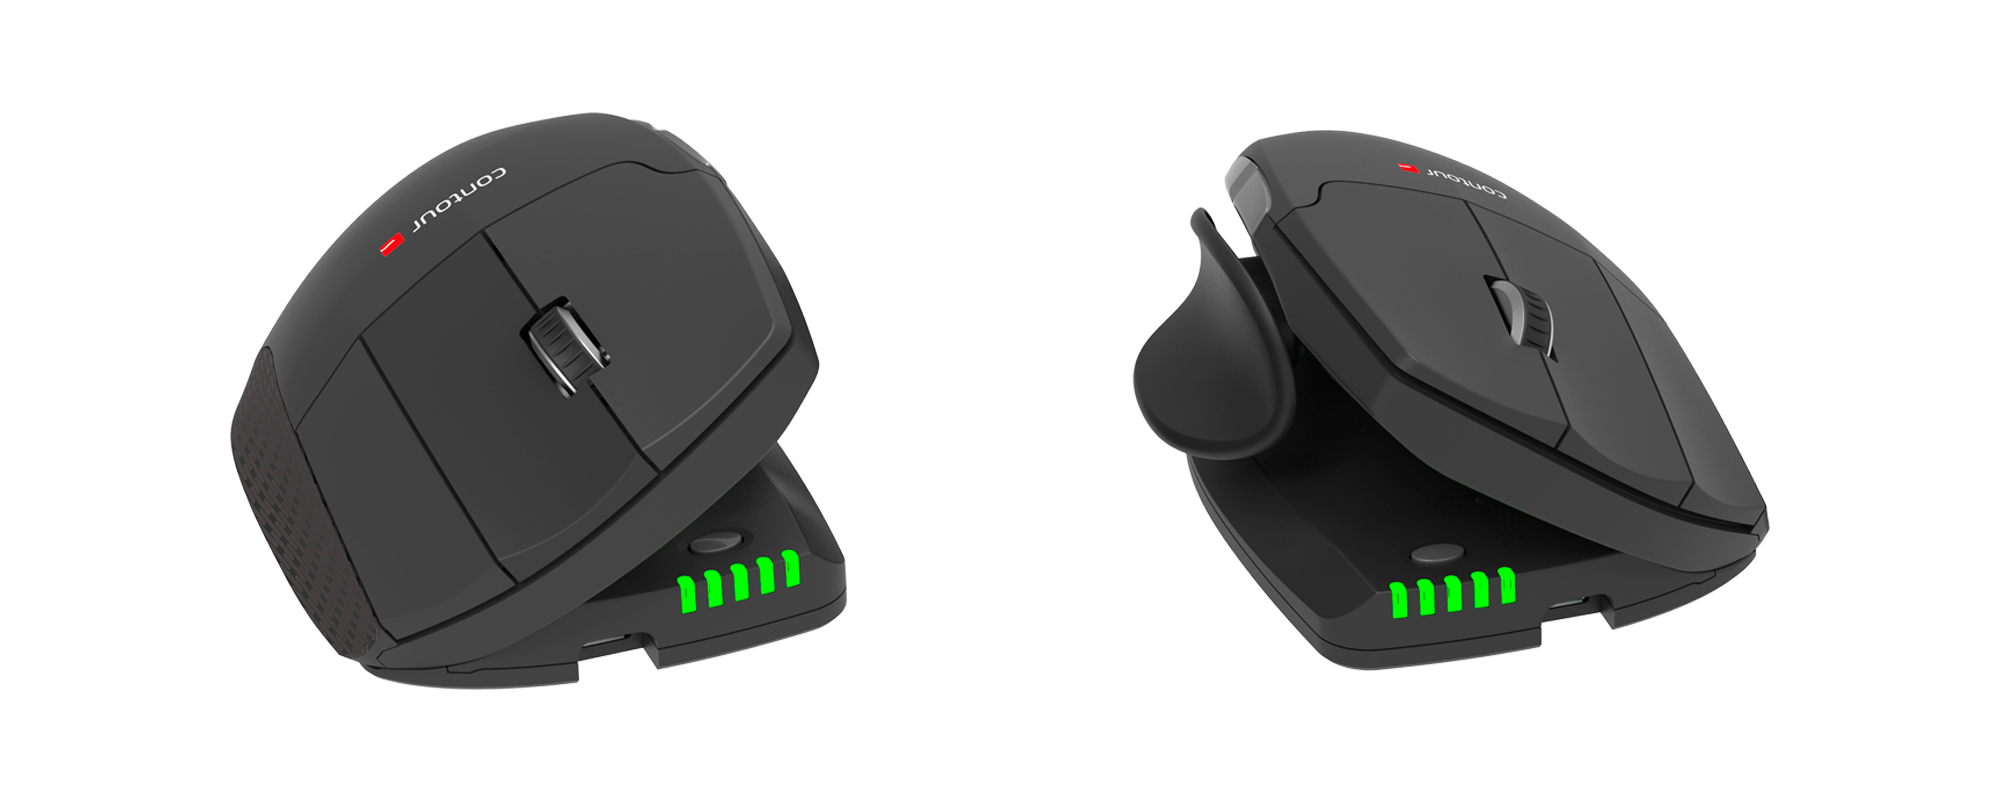 Unimouse - vertical mouse